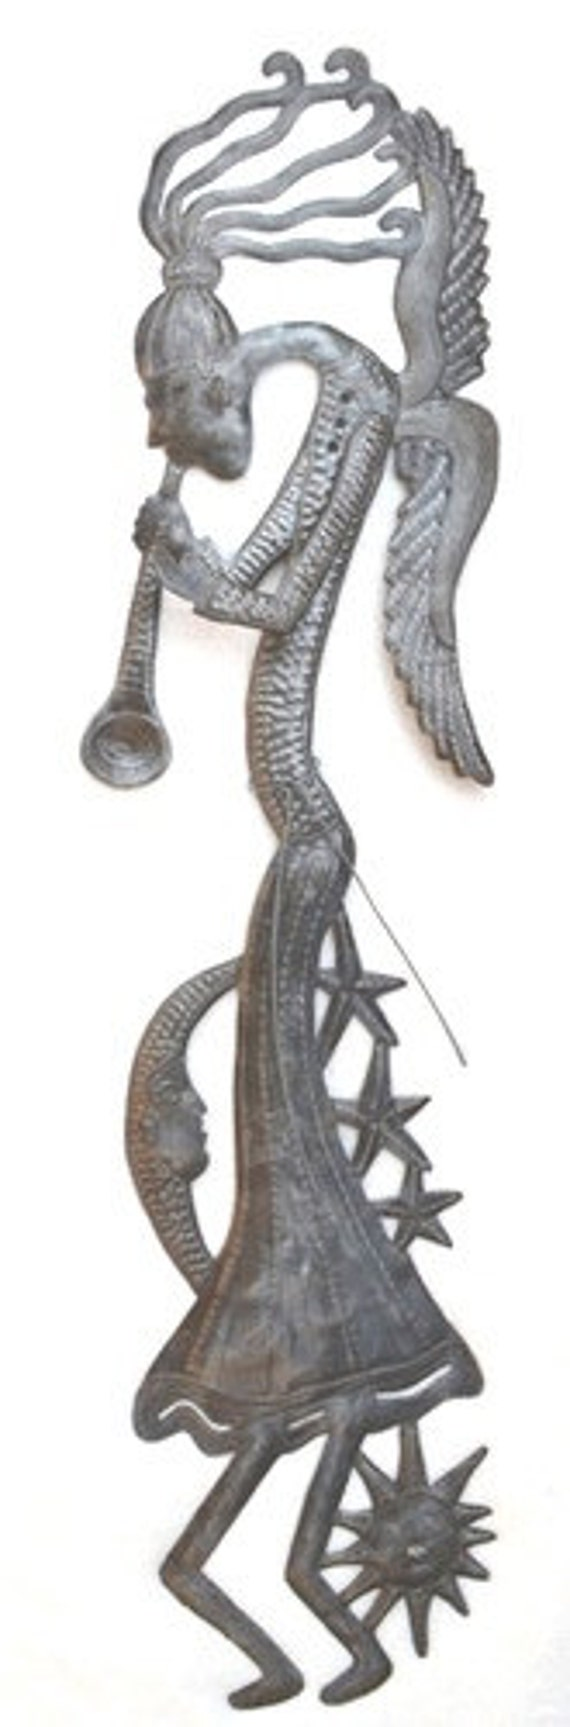 """Angel Playing Trumpet, Recycled Whimsical Garden Haiti Art 6"""" x 34"""""""